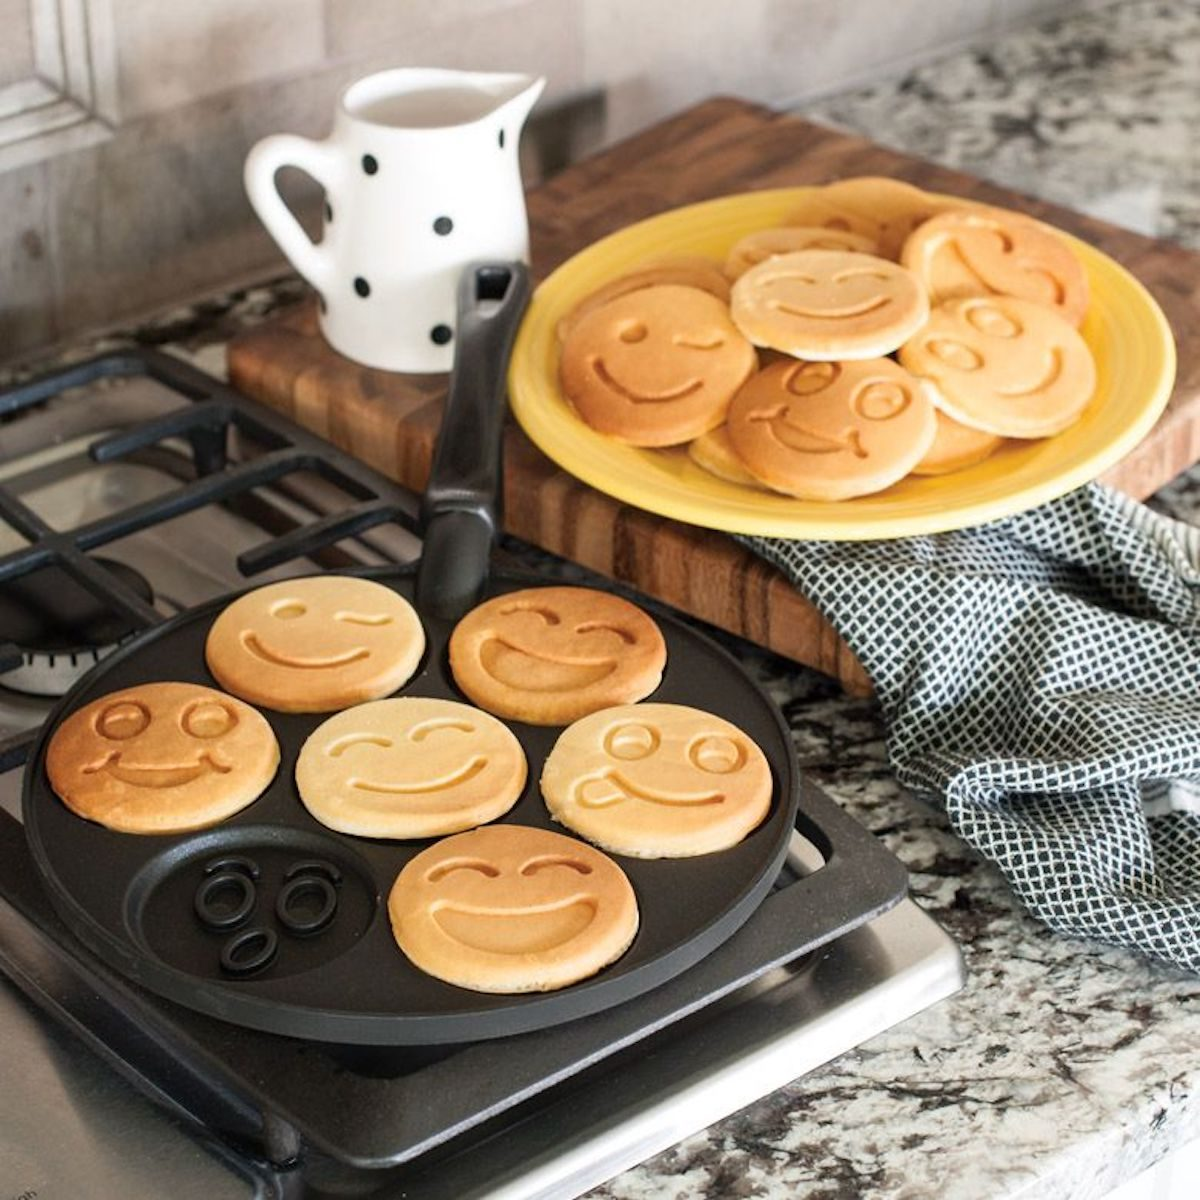 Specialty pancake maker from Nordic Ware